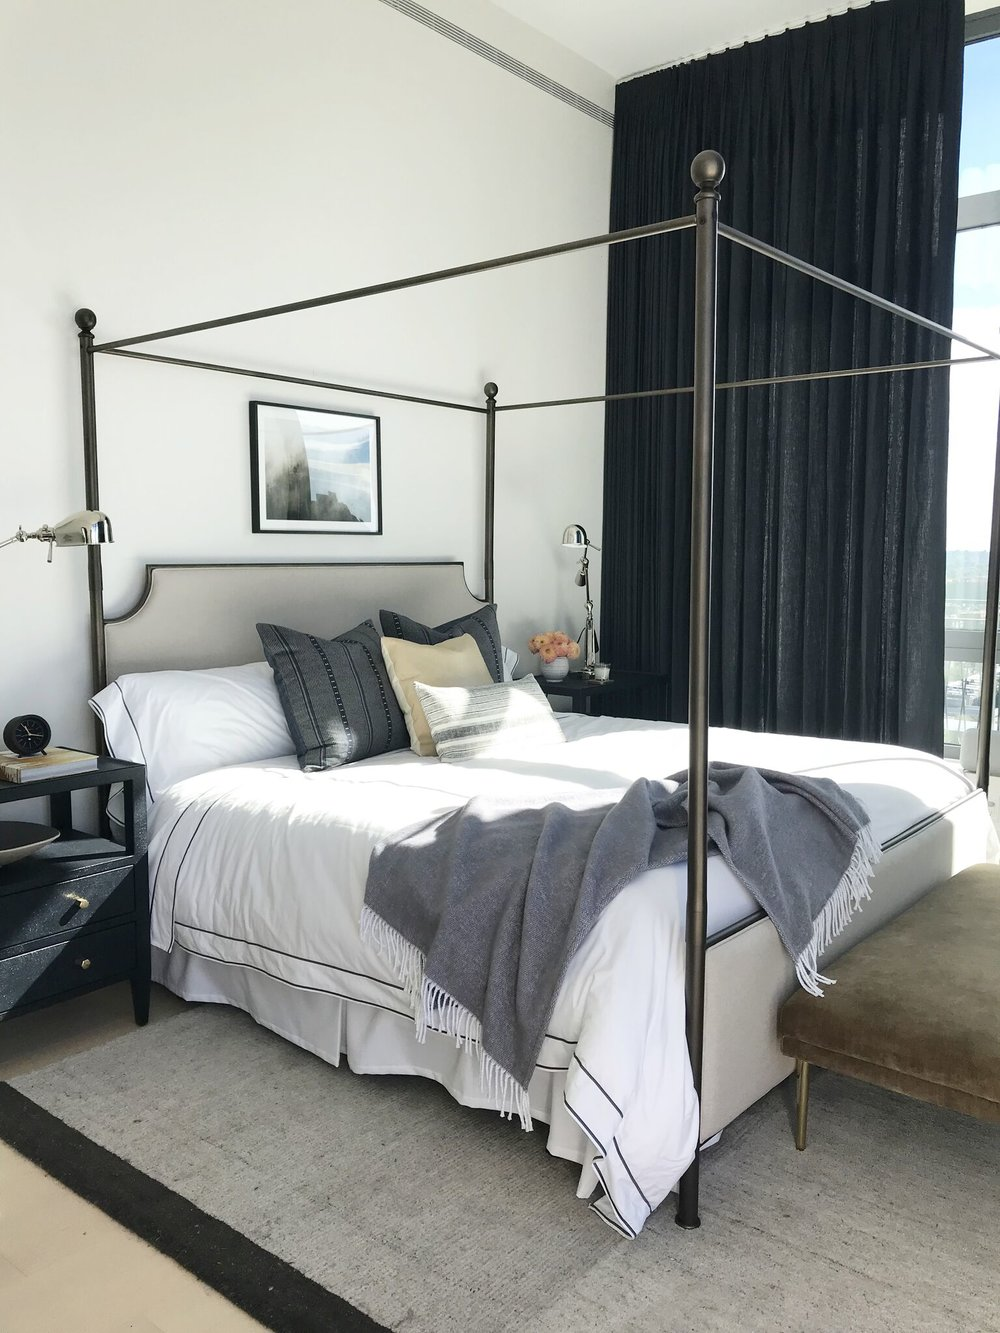 Real Simple Magazine - Brooklyn Penthouse Master Bedroom by Studio McGee